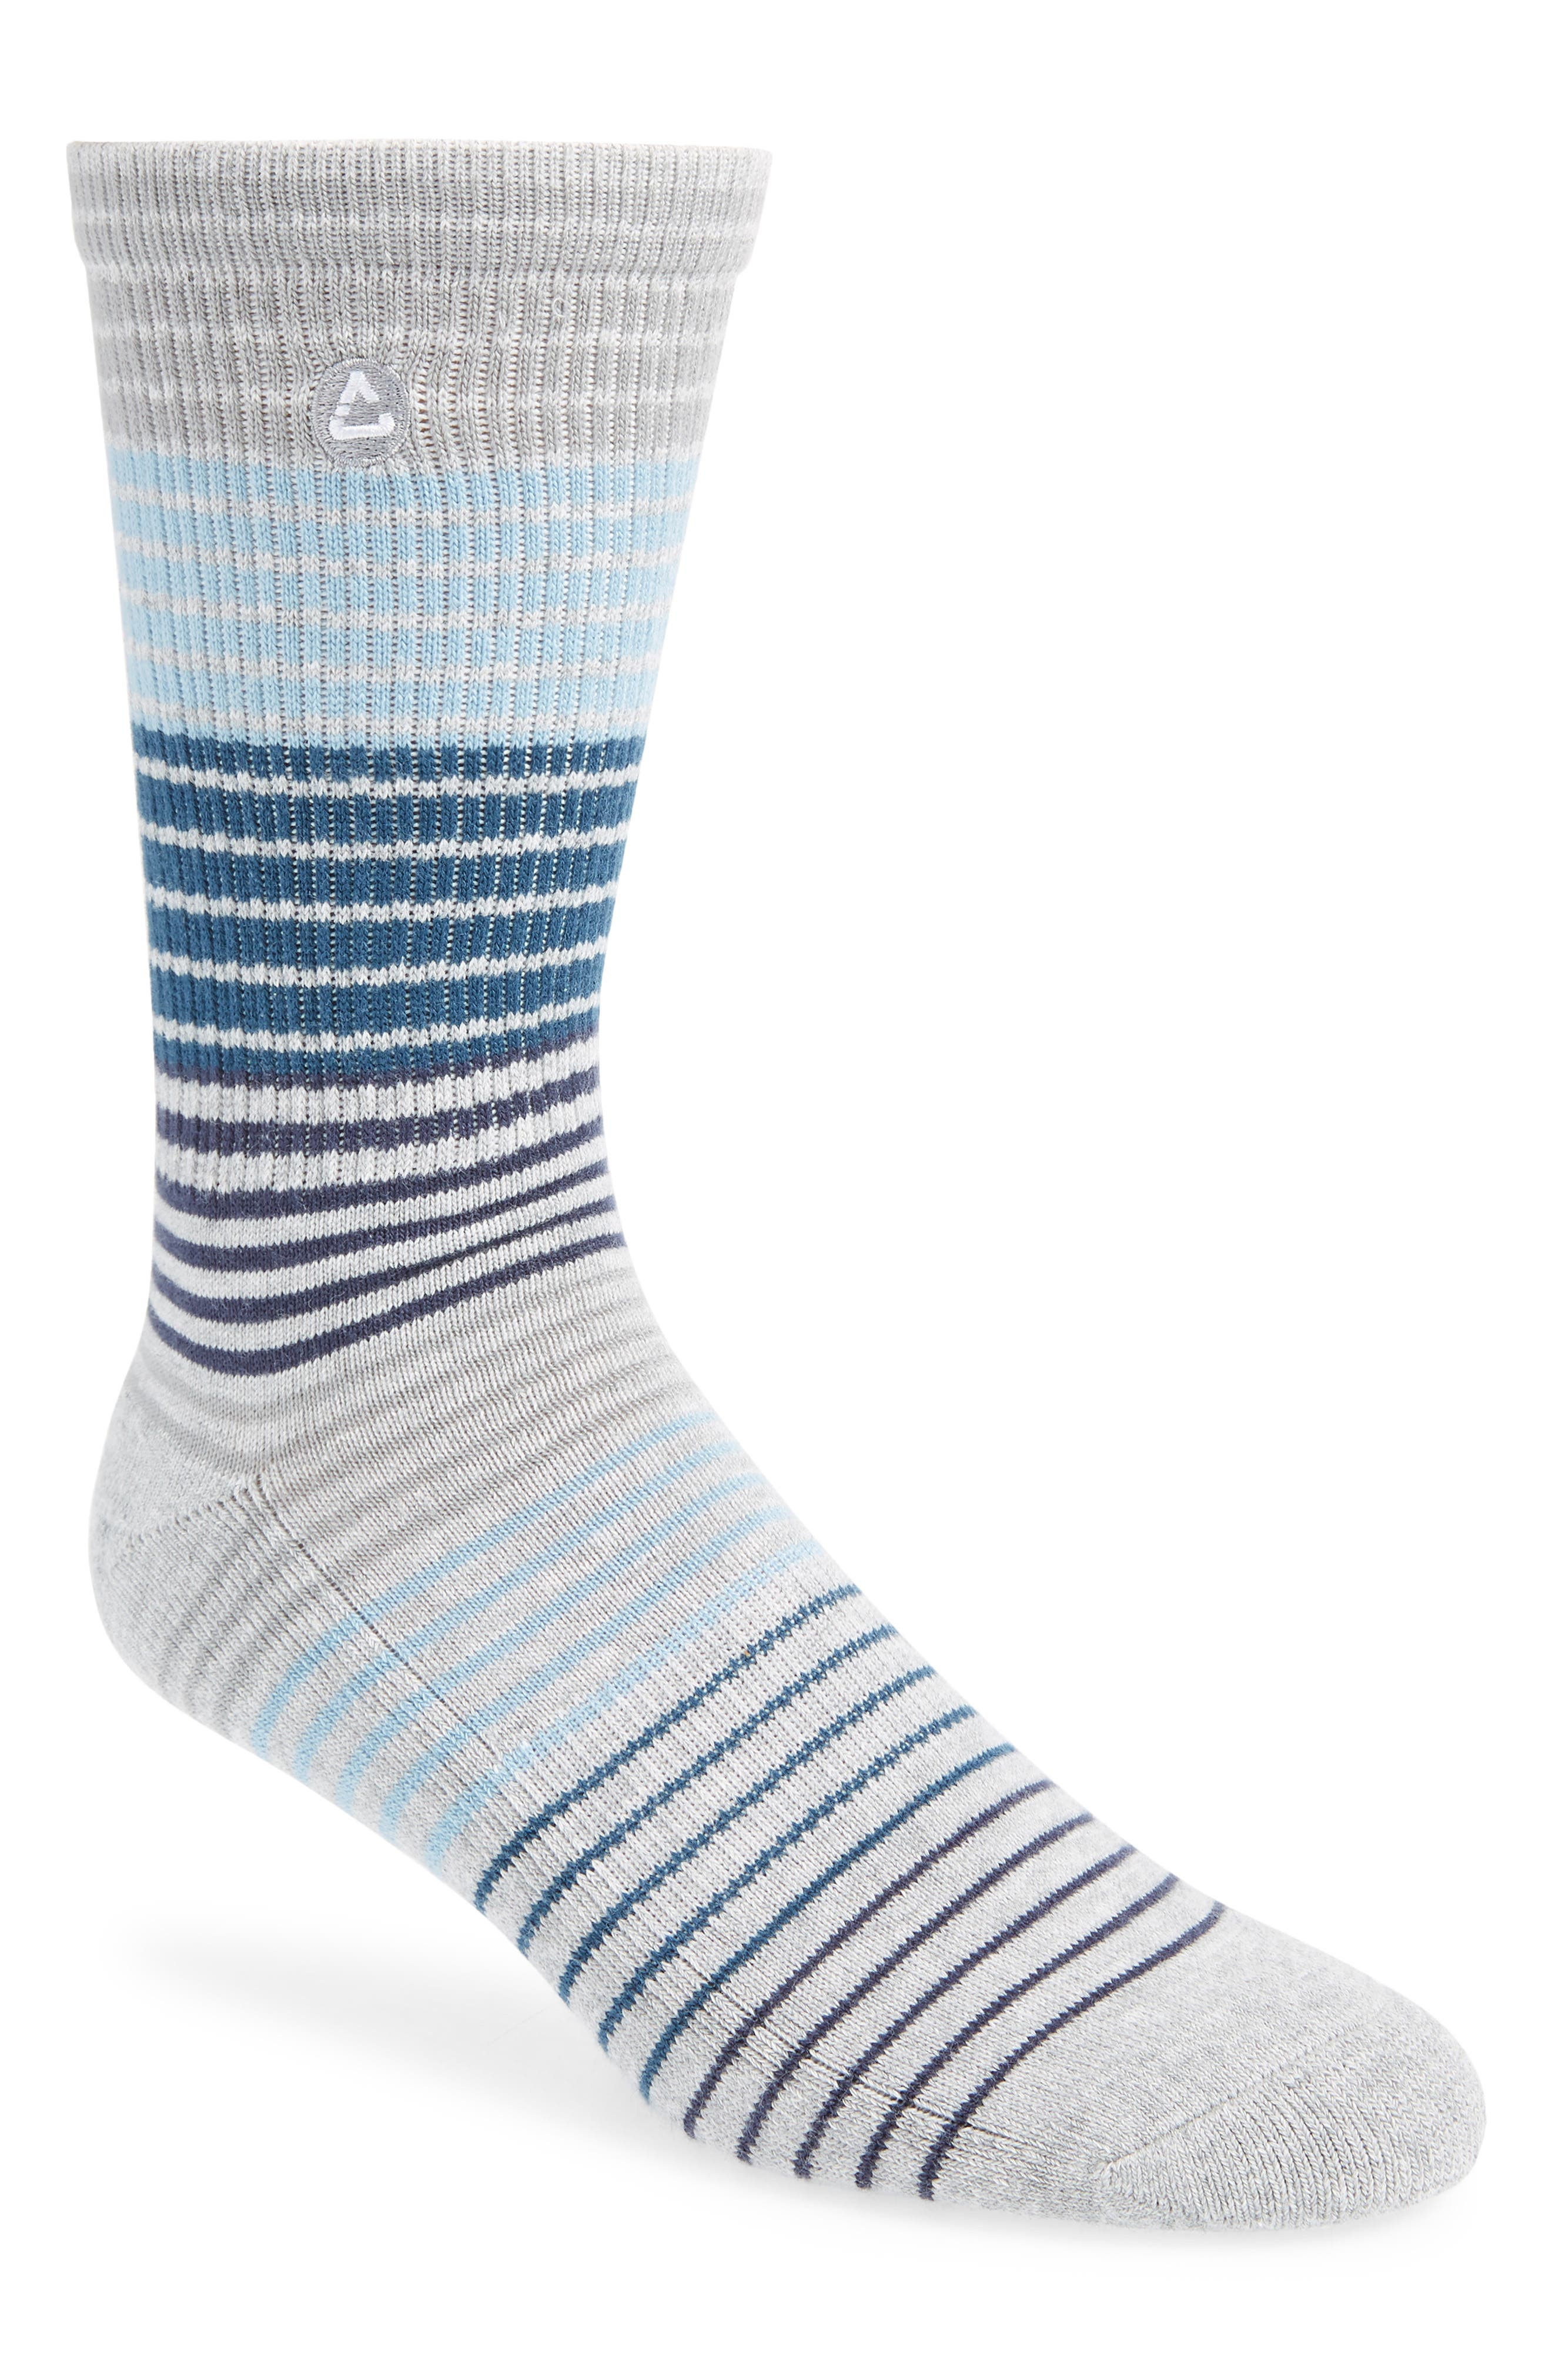 Mixed stripes bring maxed style to crew socks knit from odor-blocking fabric with enhanced cushioning putting comfort under every step. Style Name: Travismathew Ramsey Stripe Crew Socks. Style Number: 6117120. Available in stores.